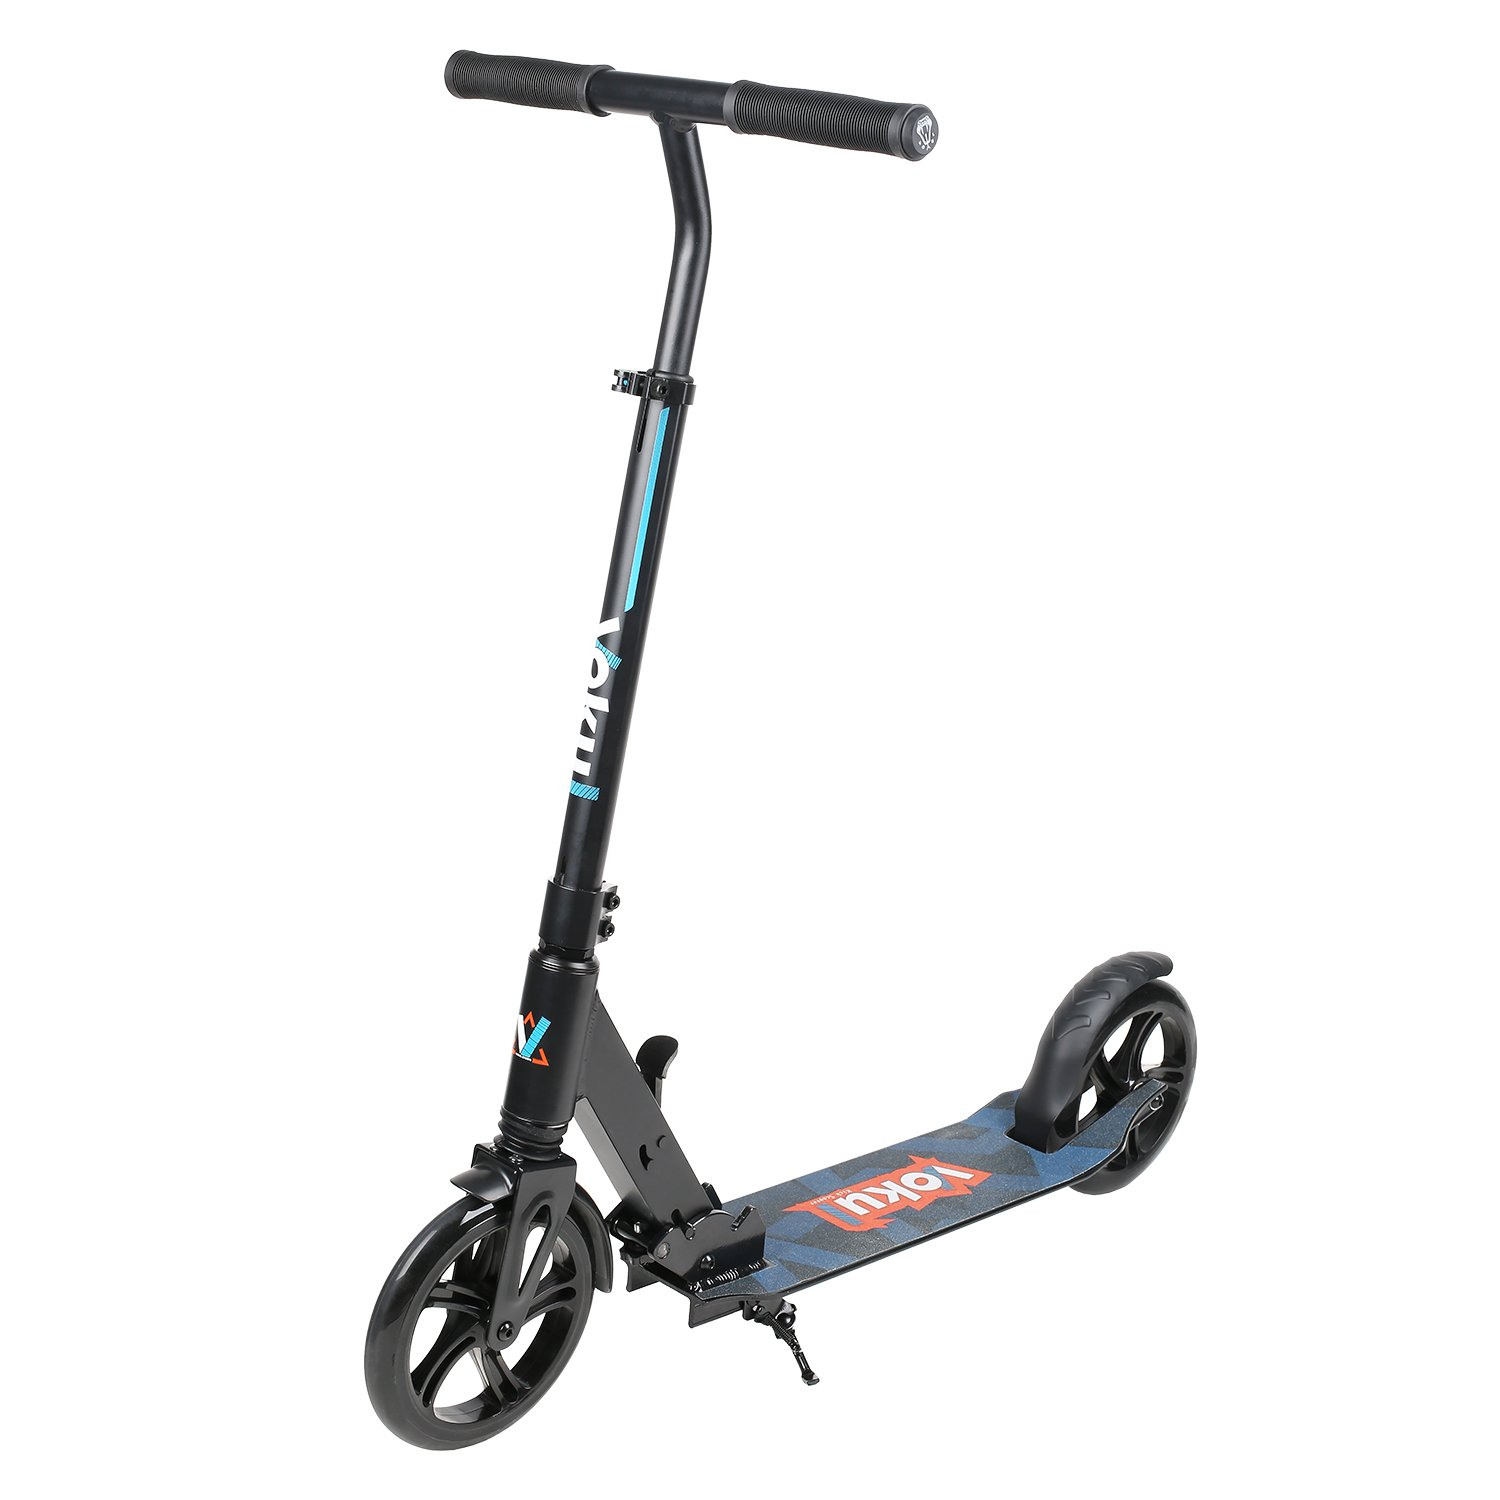 Vokul Foldable 2 Big Wheel City Urban Scooter with Adjustable Height/Kick Stand, up to 100kg/220lbs-Black